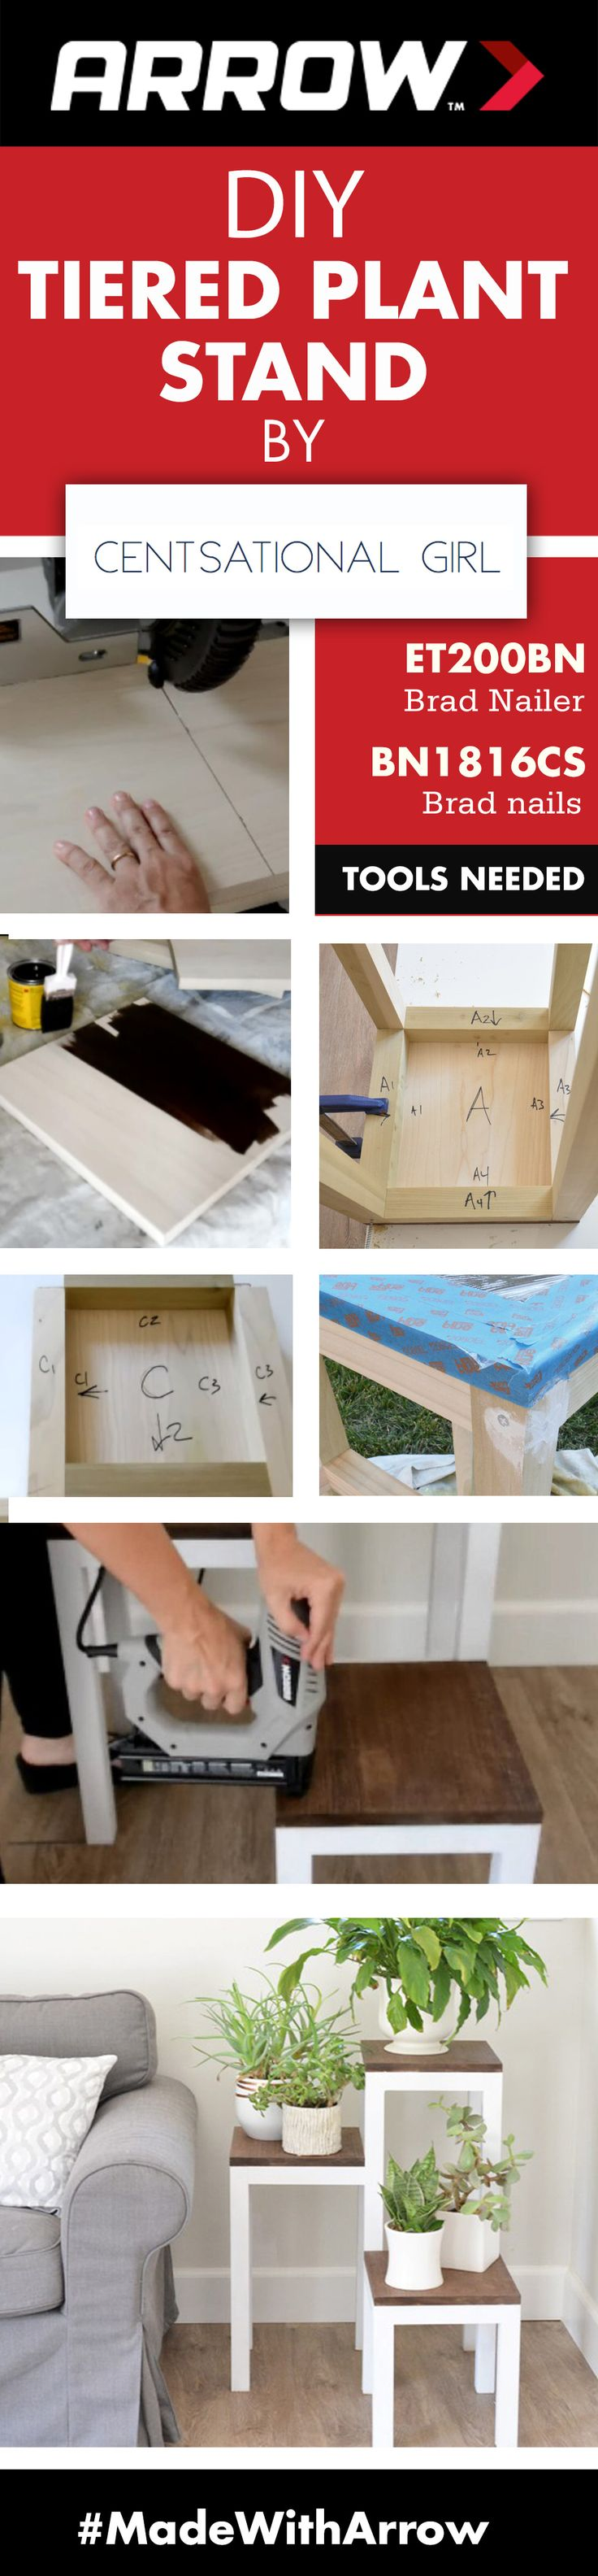 DIY Tiered Plant Stand by Centsational Girl || Decorate the boring corners of your home by creating tiered tables for greenery using Arrow's ET200BN Professional Electric Brad Nailer, poplar boards and a few other supplies and tools. Follow Arrow Fastener on Pinterest for more great projects! www.arrowfastener.com